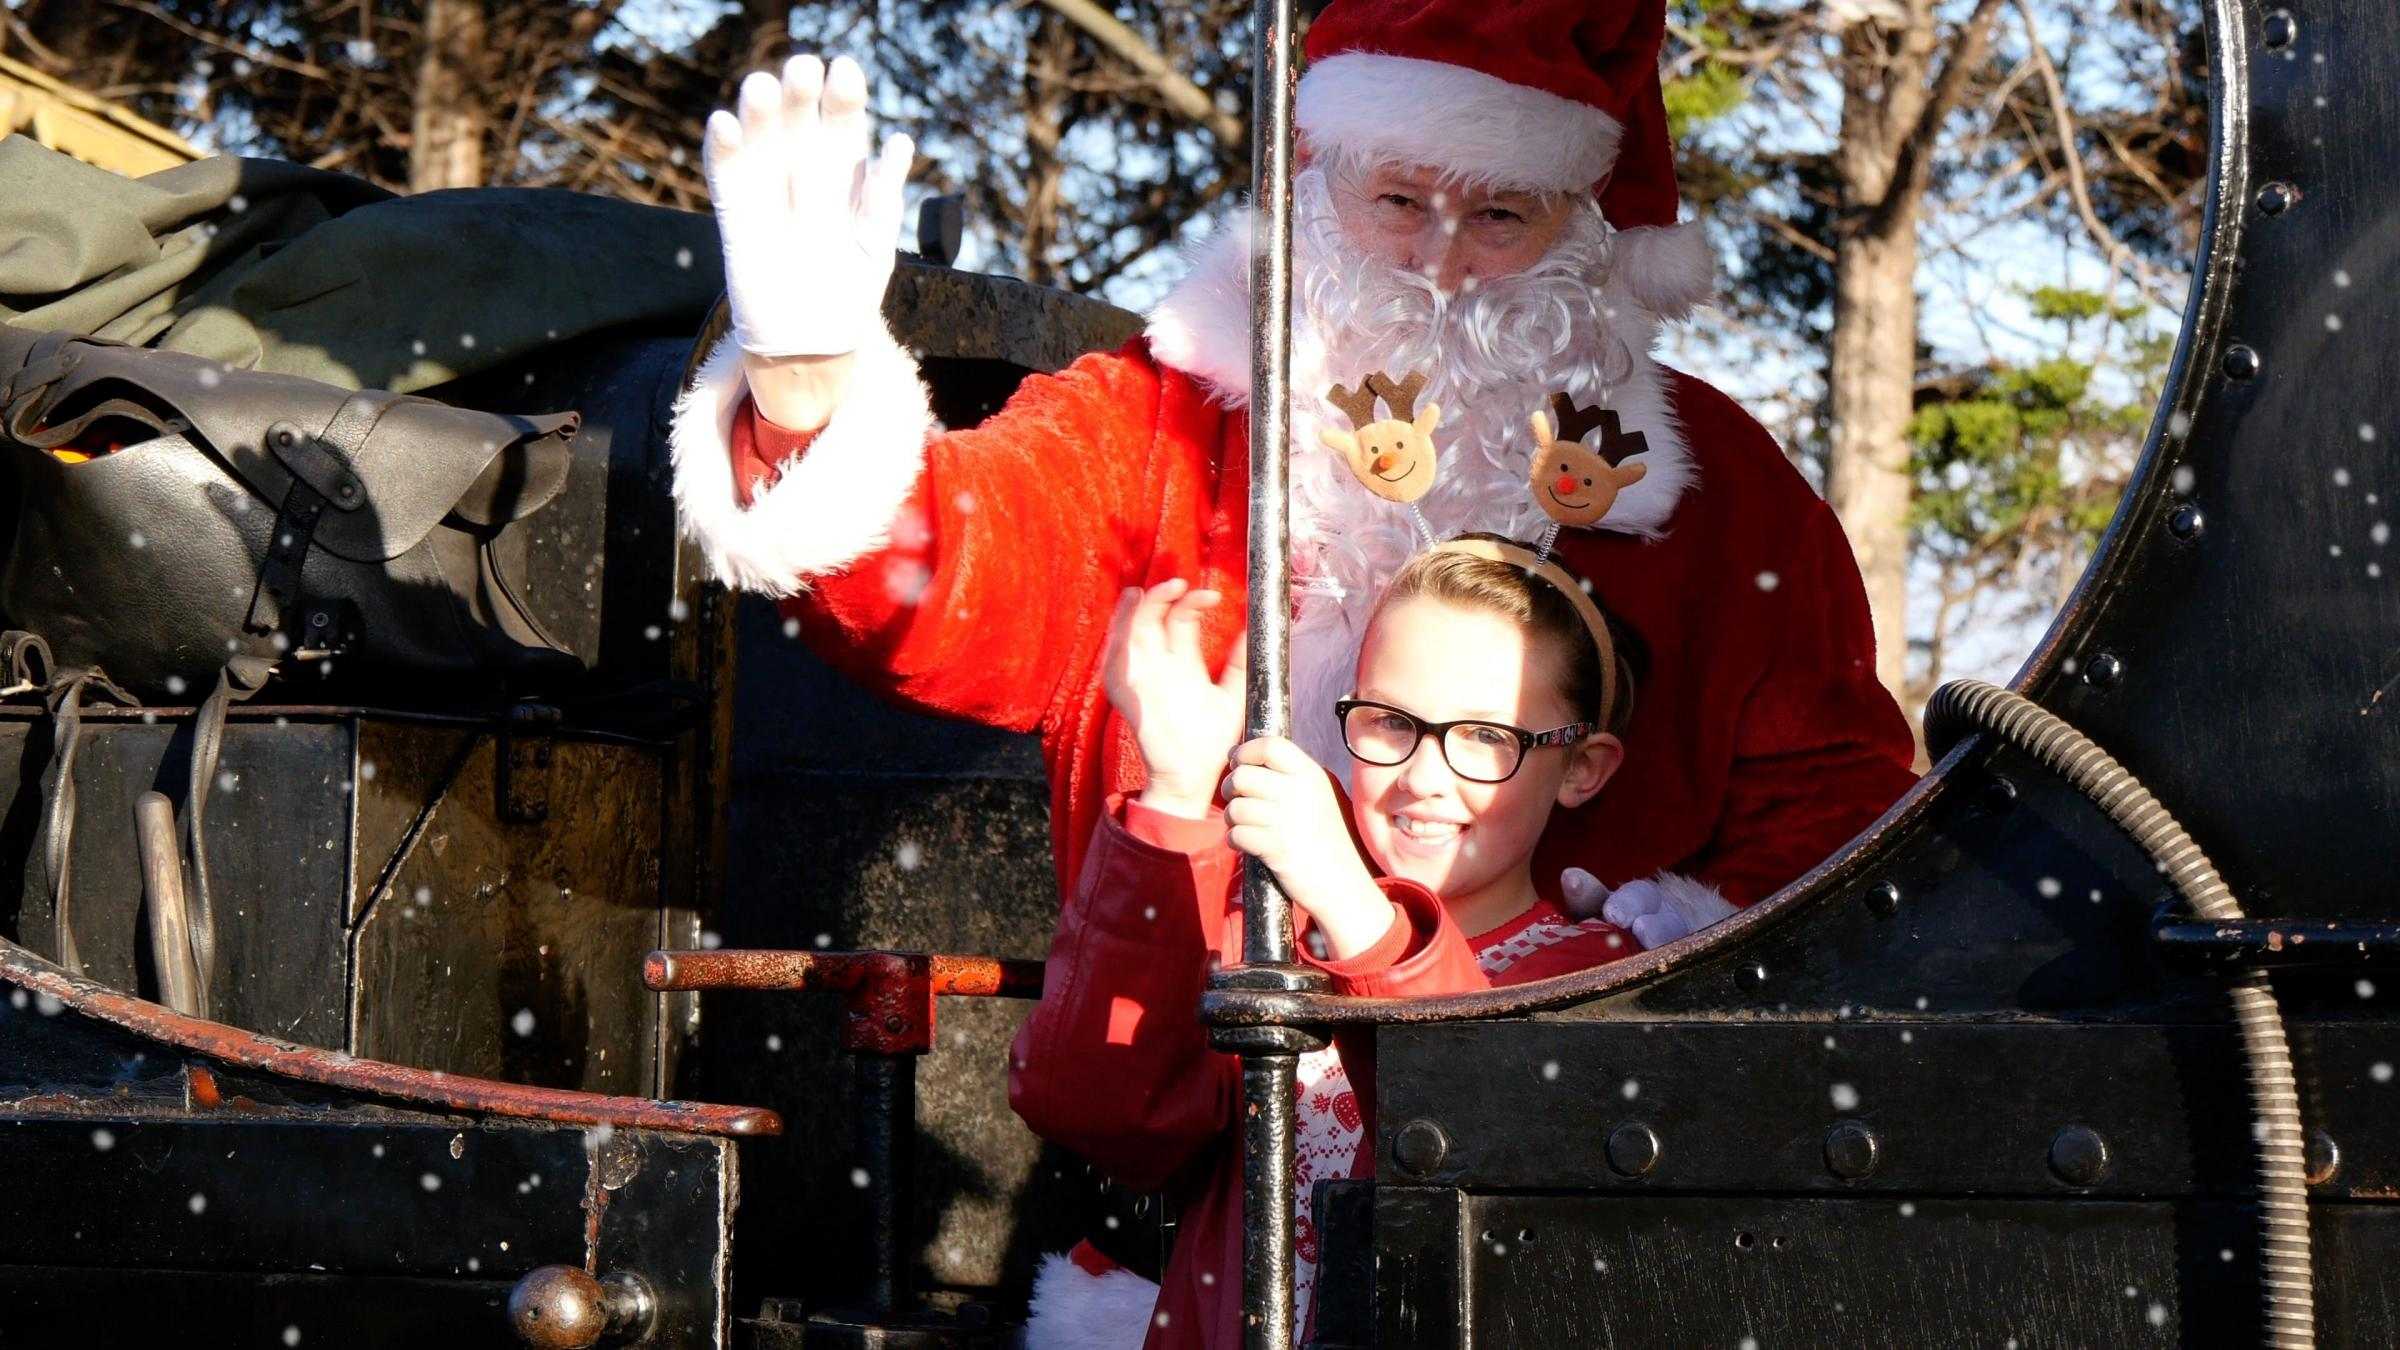 POPULAR: West Somerset Railway's Santa Express service has proved a hit. WSR says it is pleased with the amount of support it has received from locals and visitors since its three month closure was announced.